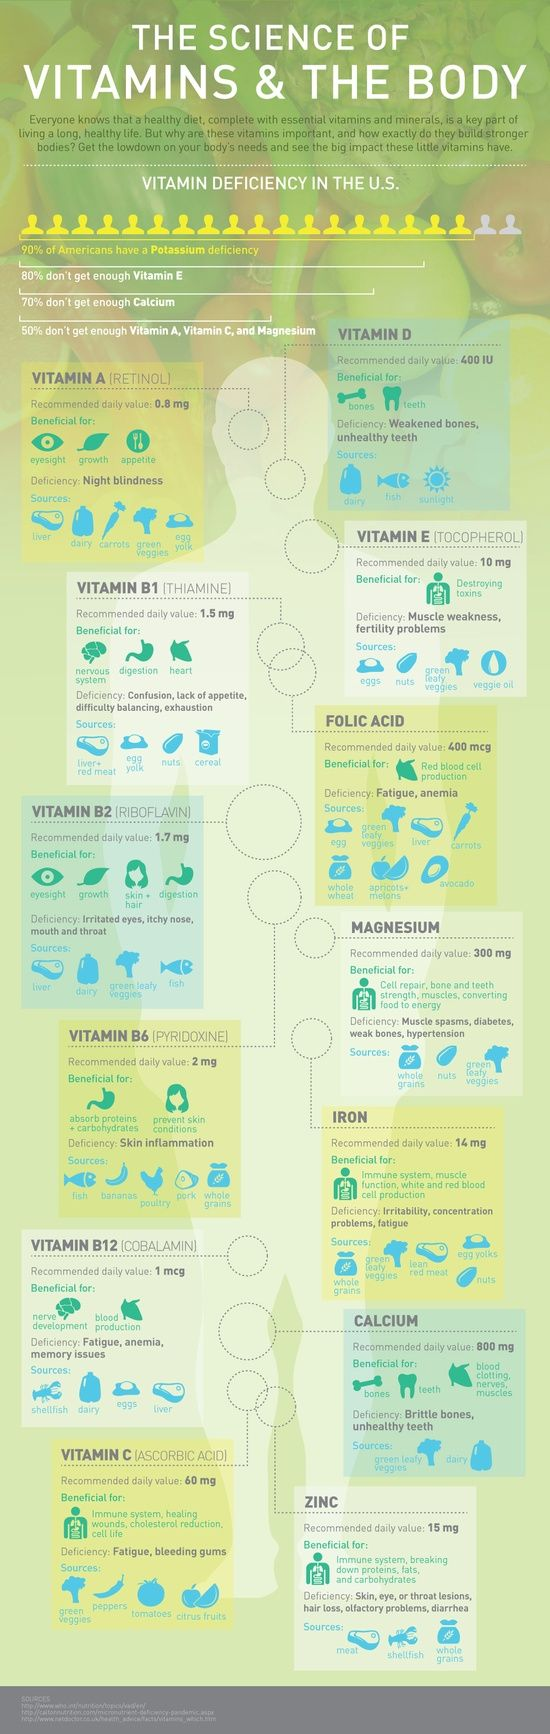 The Science of Vitamins and the Body #Infographic